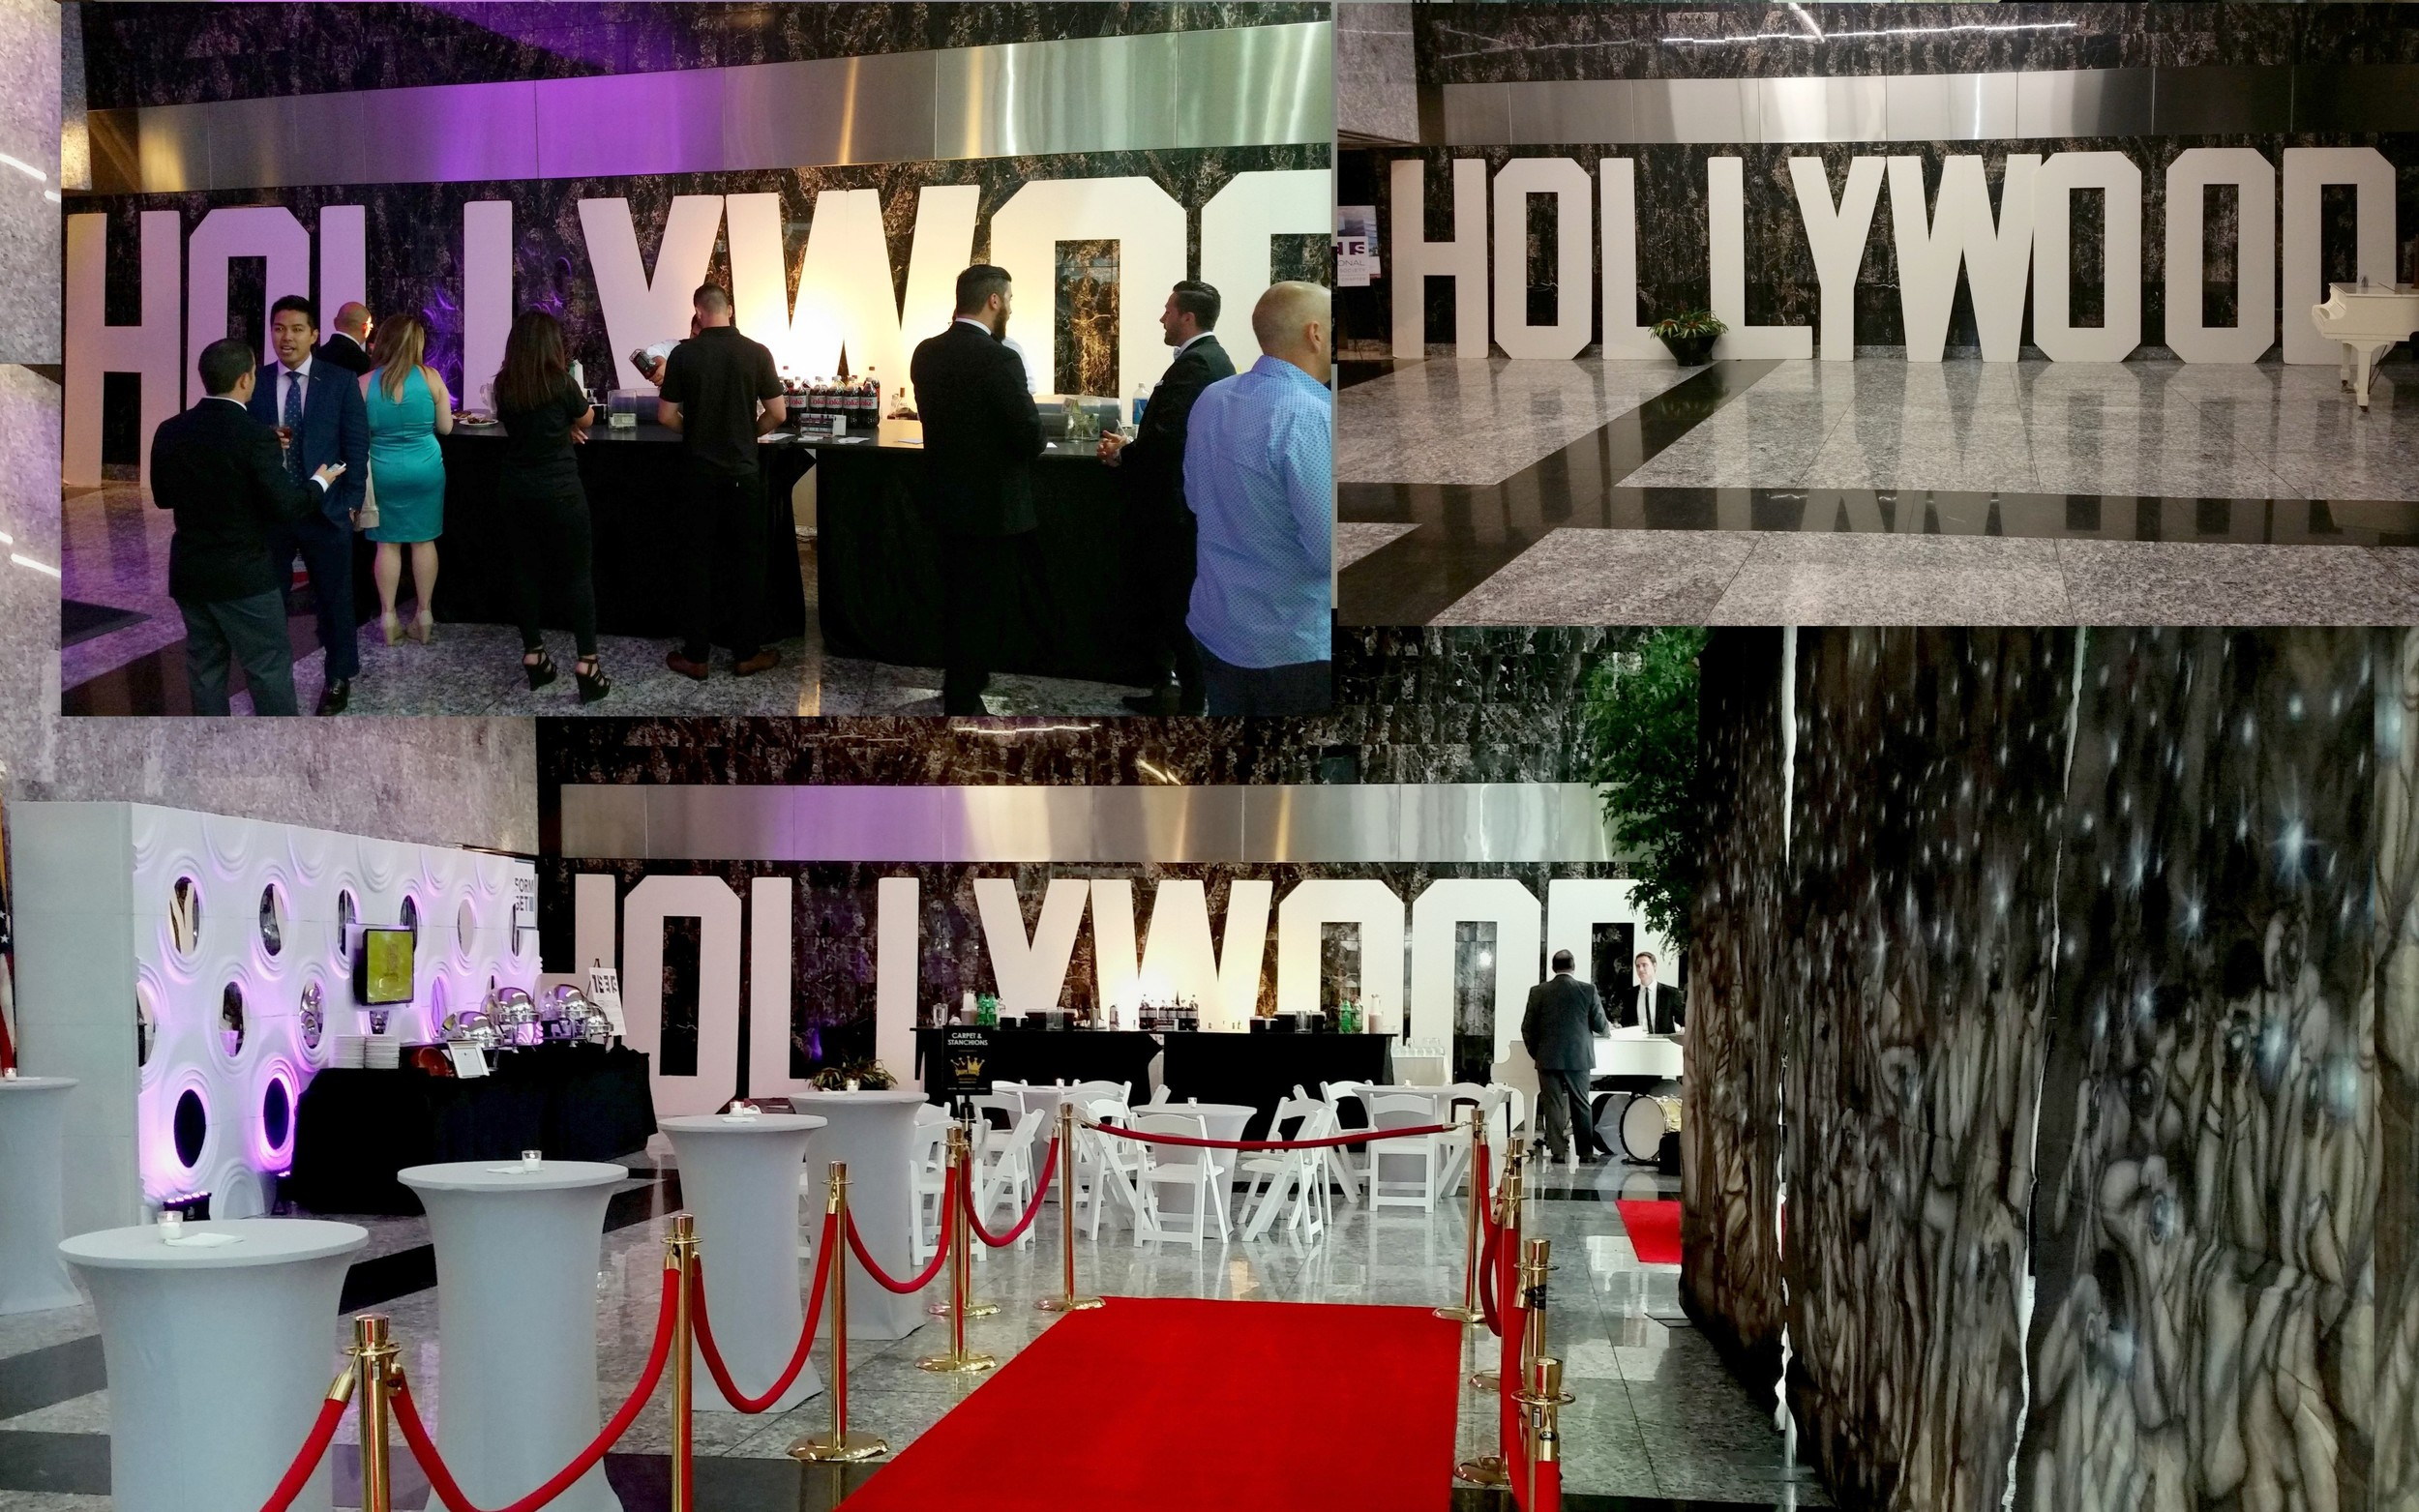 HOLLYWOOD Letters 8' tall and approximately 45' wide